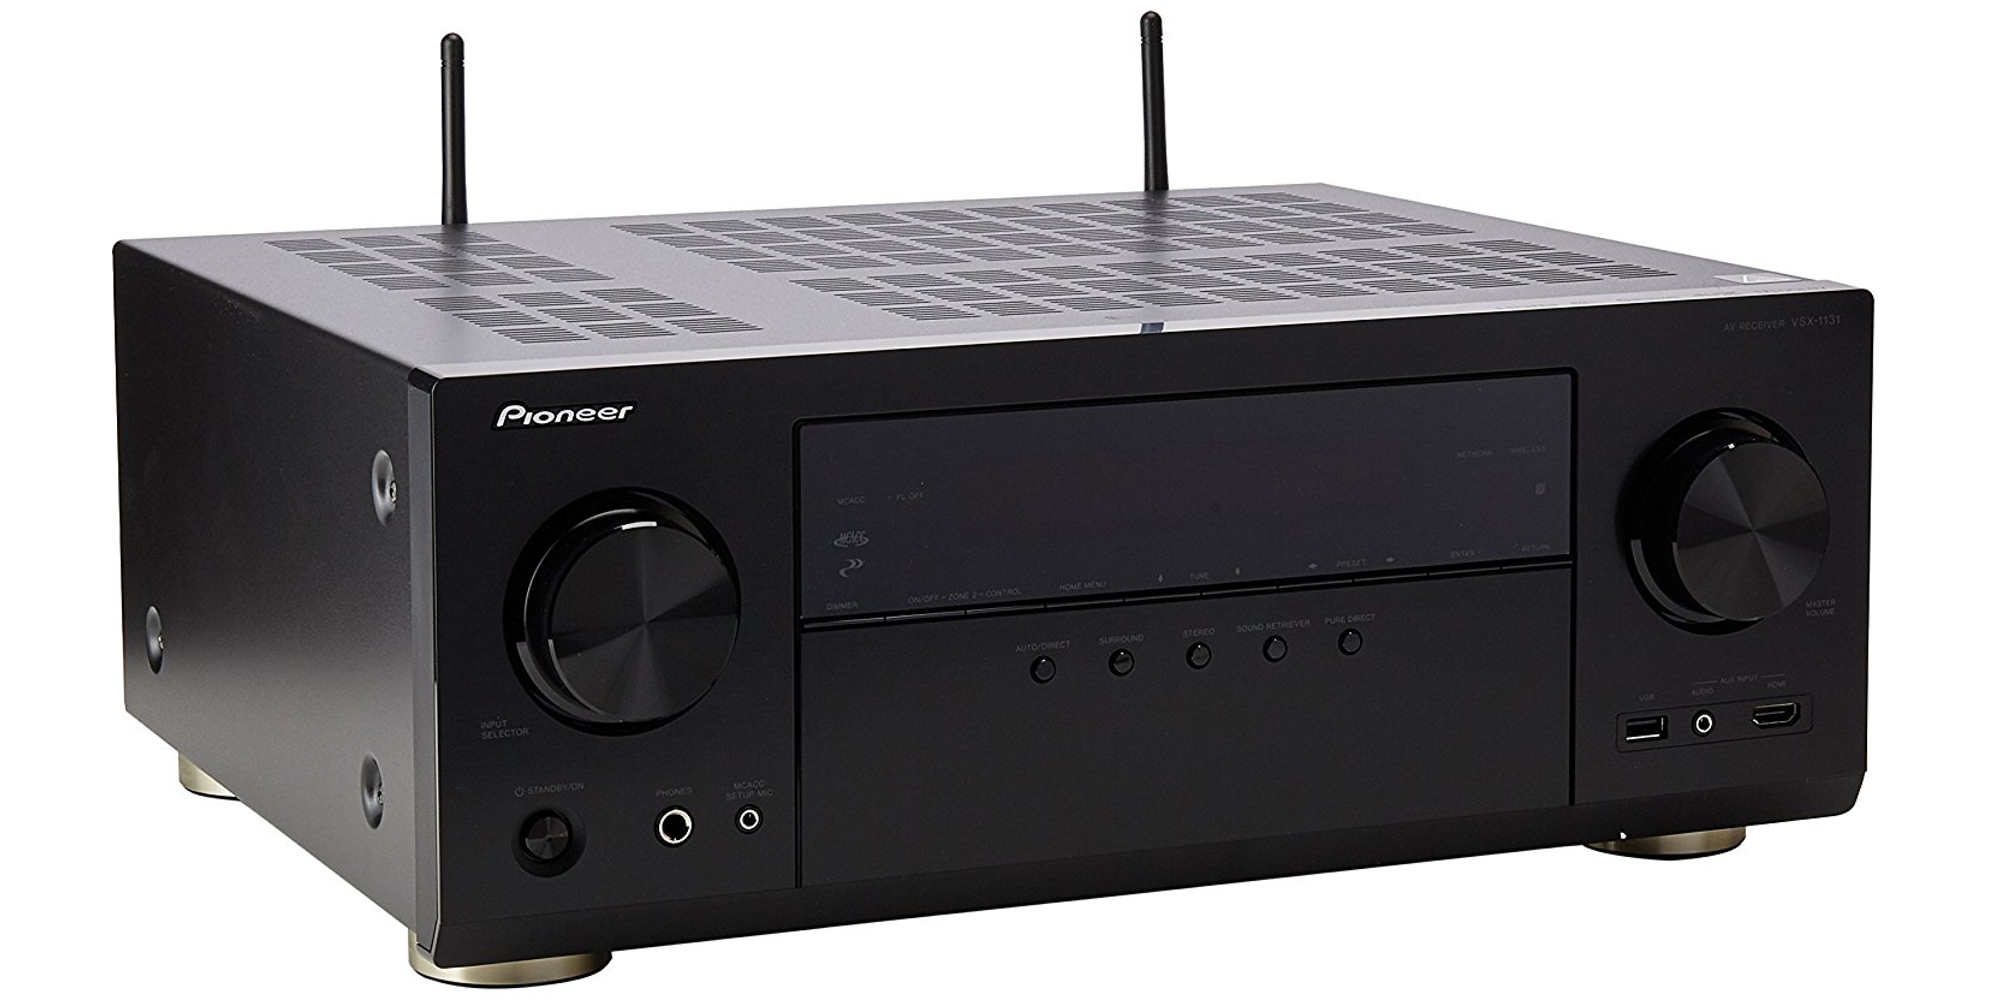 Pioneer's 7.2-Ch. A/V receiver supports AirPlay, Chromecast, & 4K HDR for $228 ($340 value)